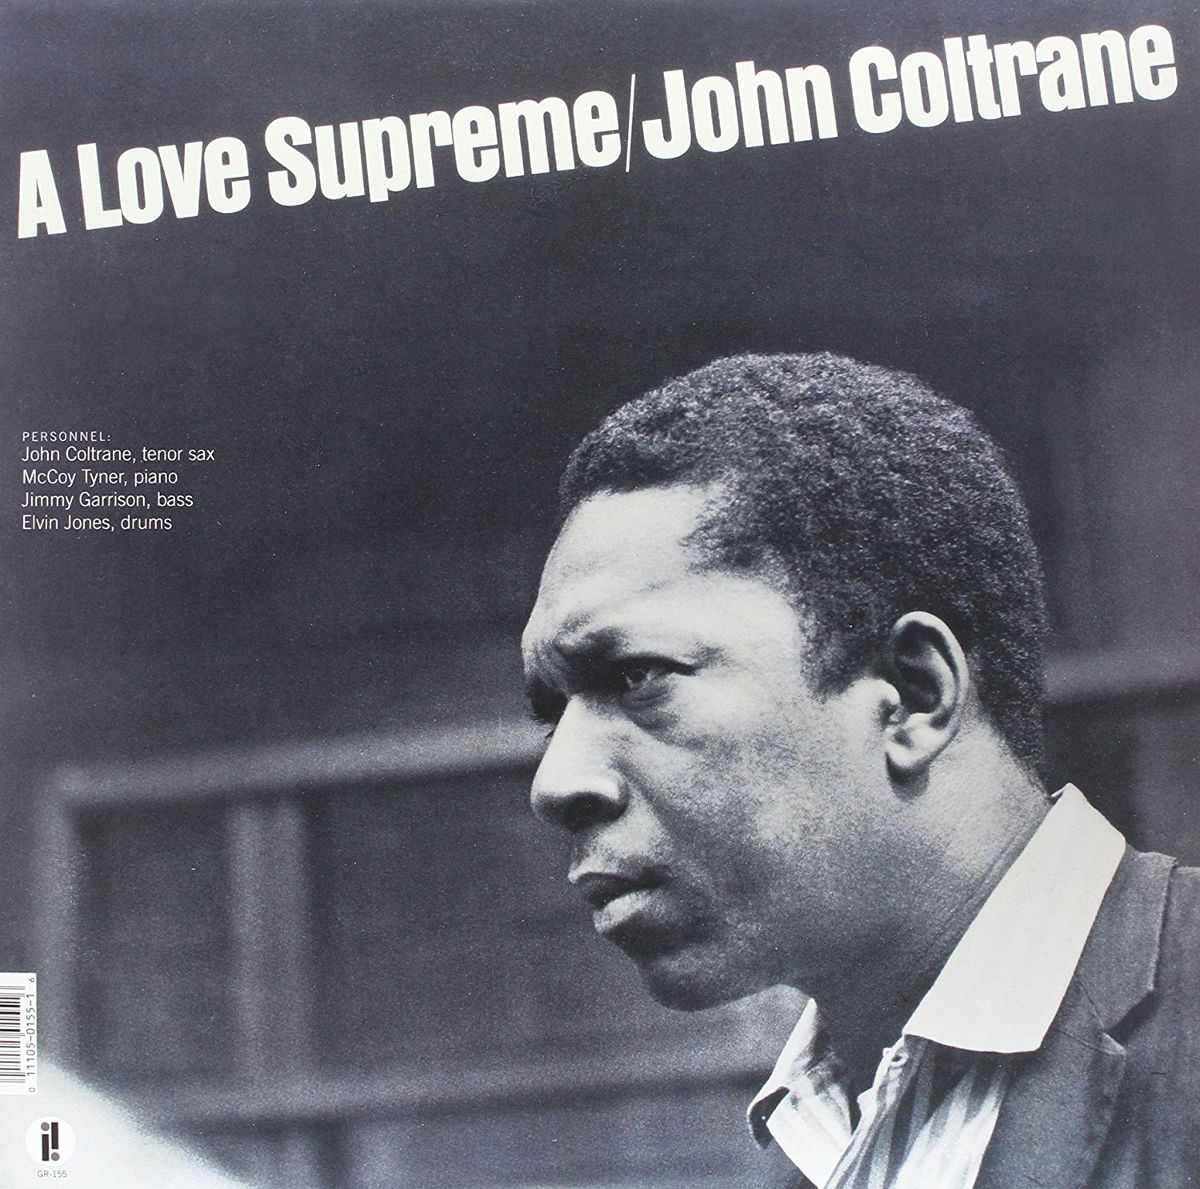 John-Coltrane-A-Love-Supreme-album-cover